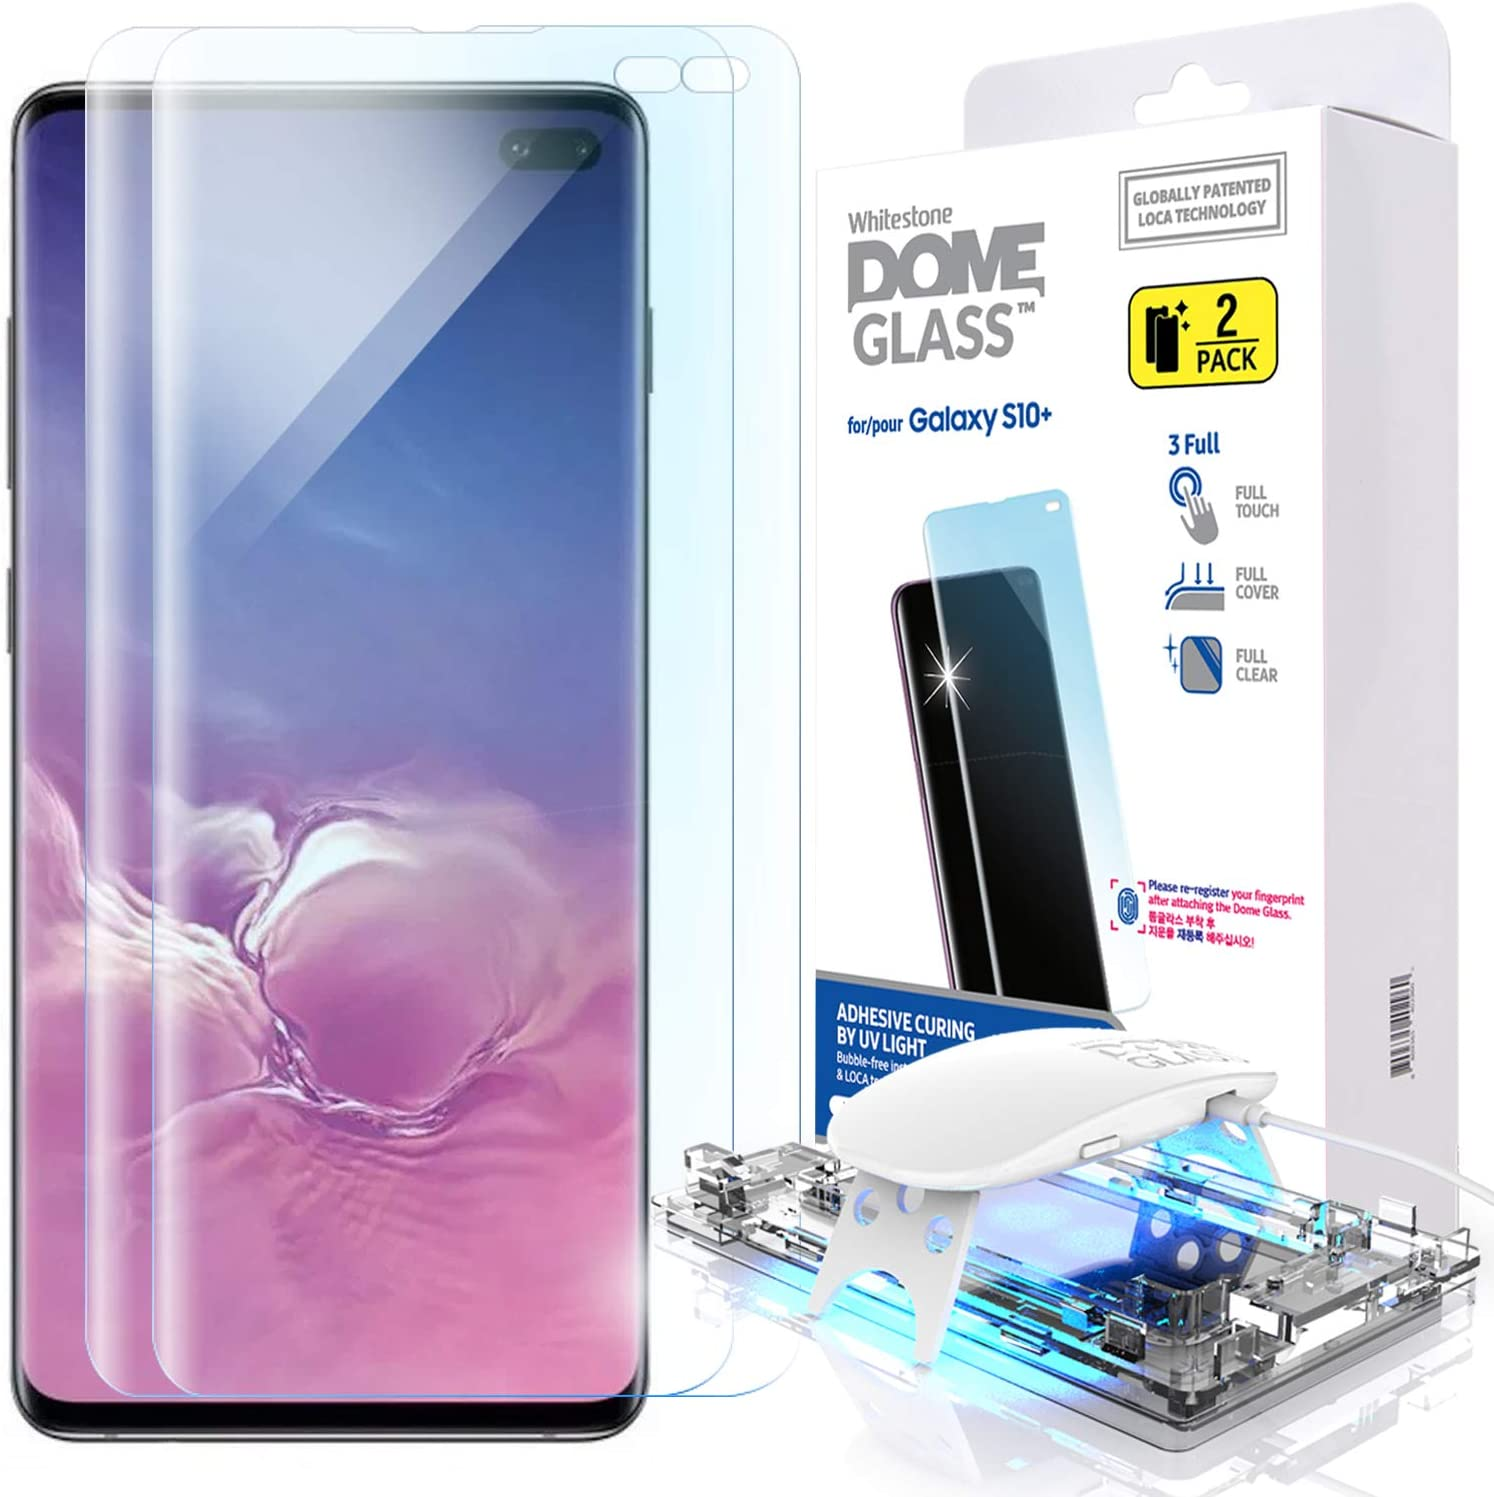 Galaxy S10 Plus Screen Protector, [Dome Glass] Full 3D Curved Edge Tempered Glass [Exclusive Solution for Ultrasonic Fingerprint] Easy Install Kit by Whitestone for Samsung Galaxy S10+ (2019) - 2 Pack